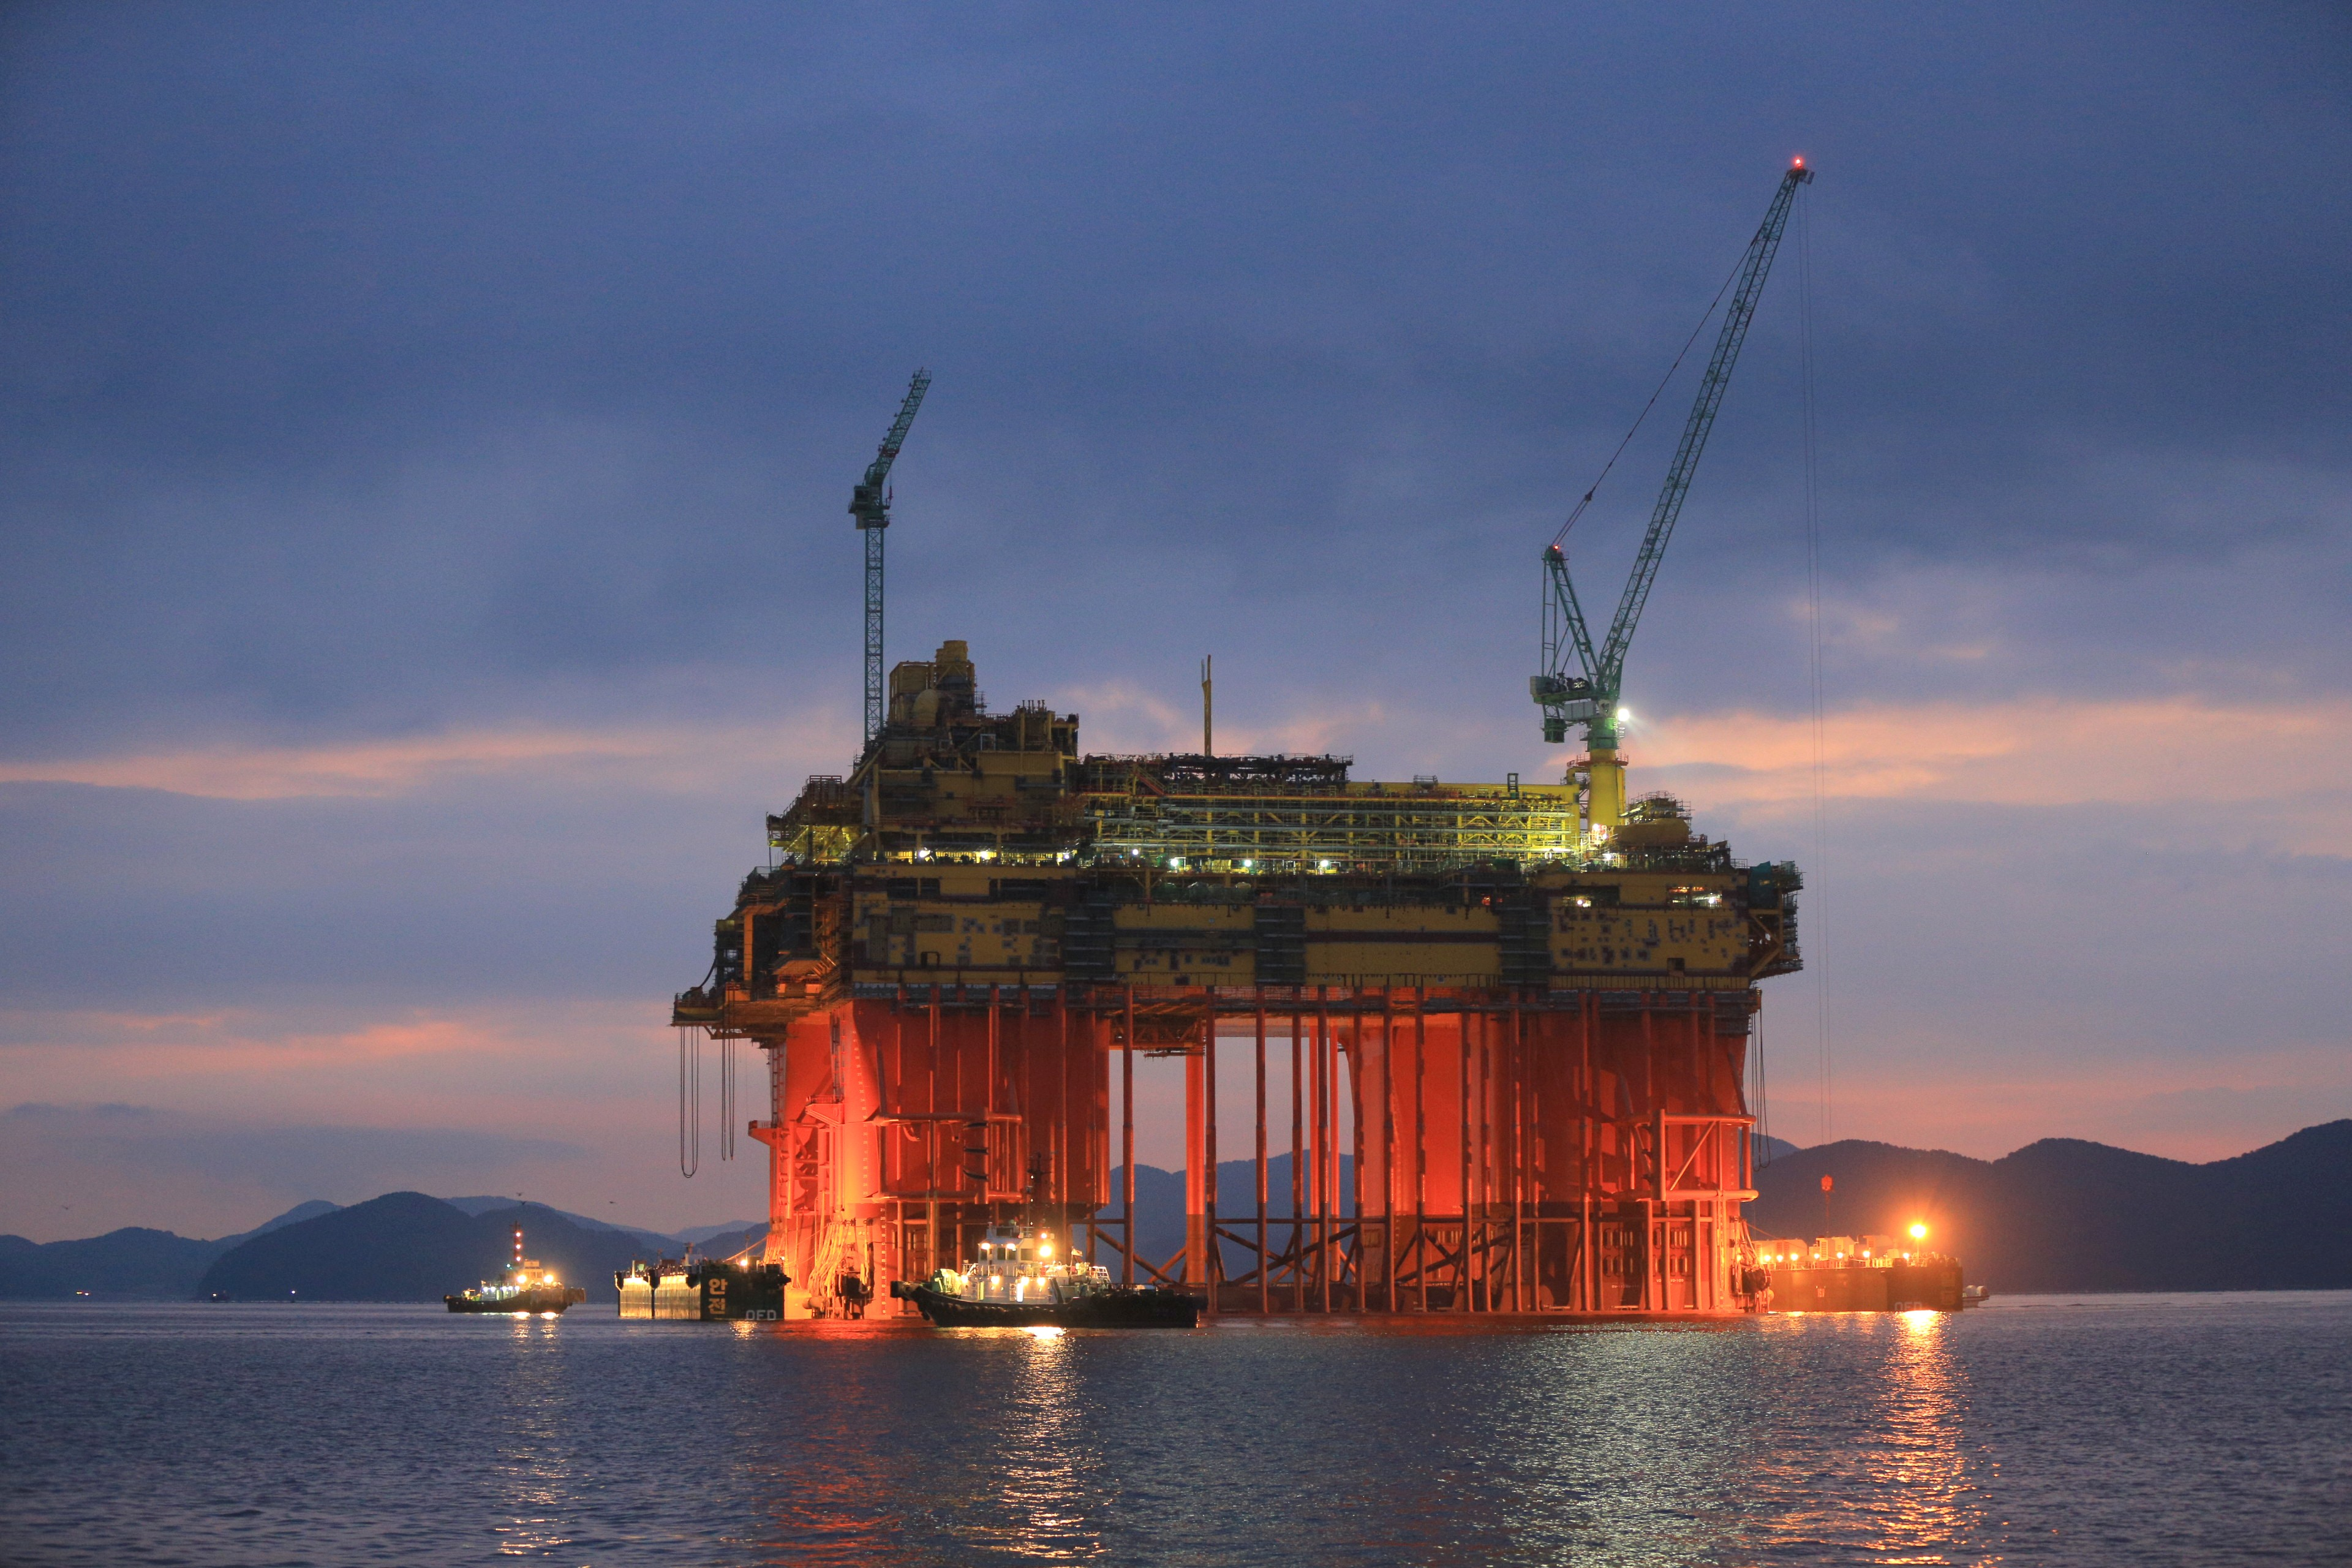 The Ichthys LNG Project